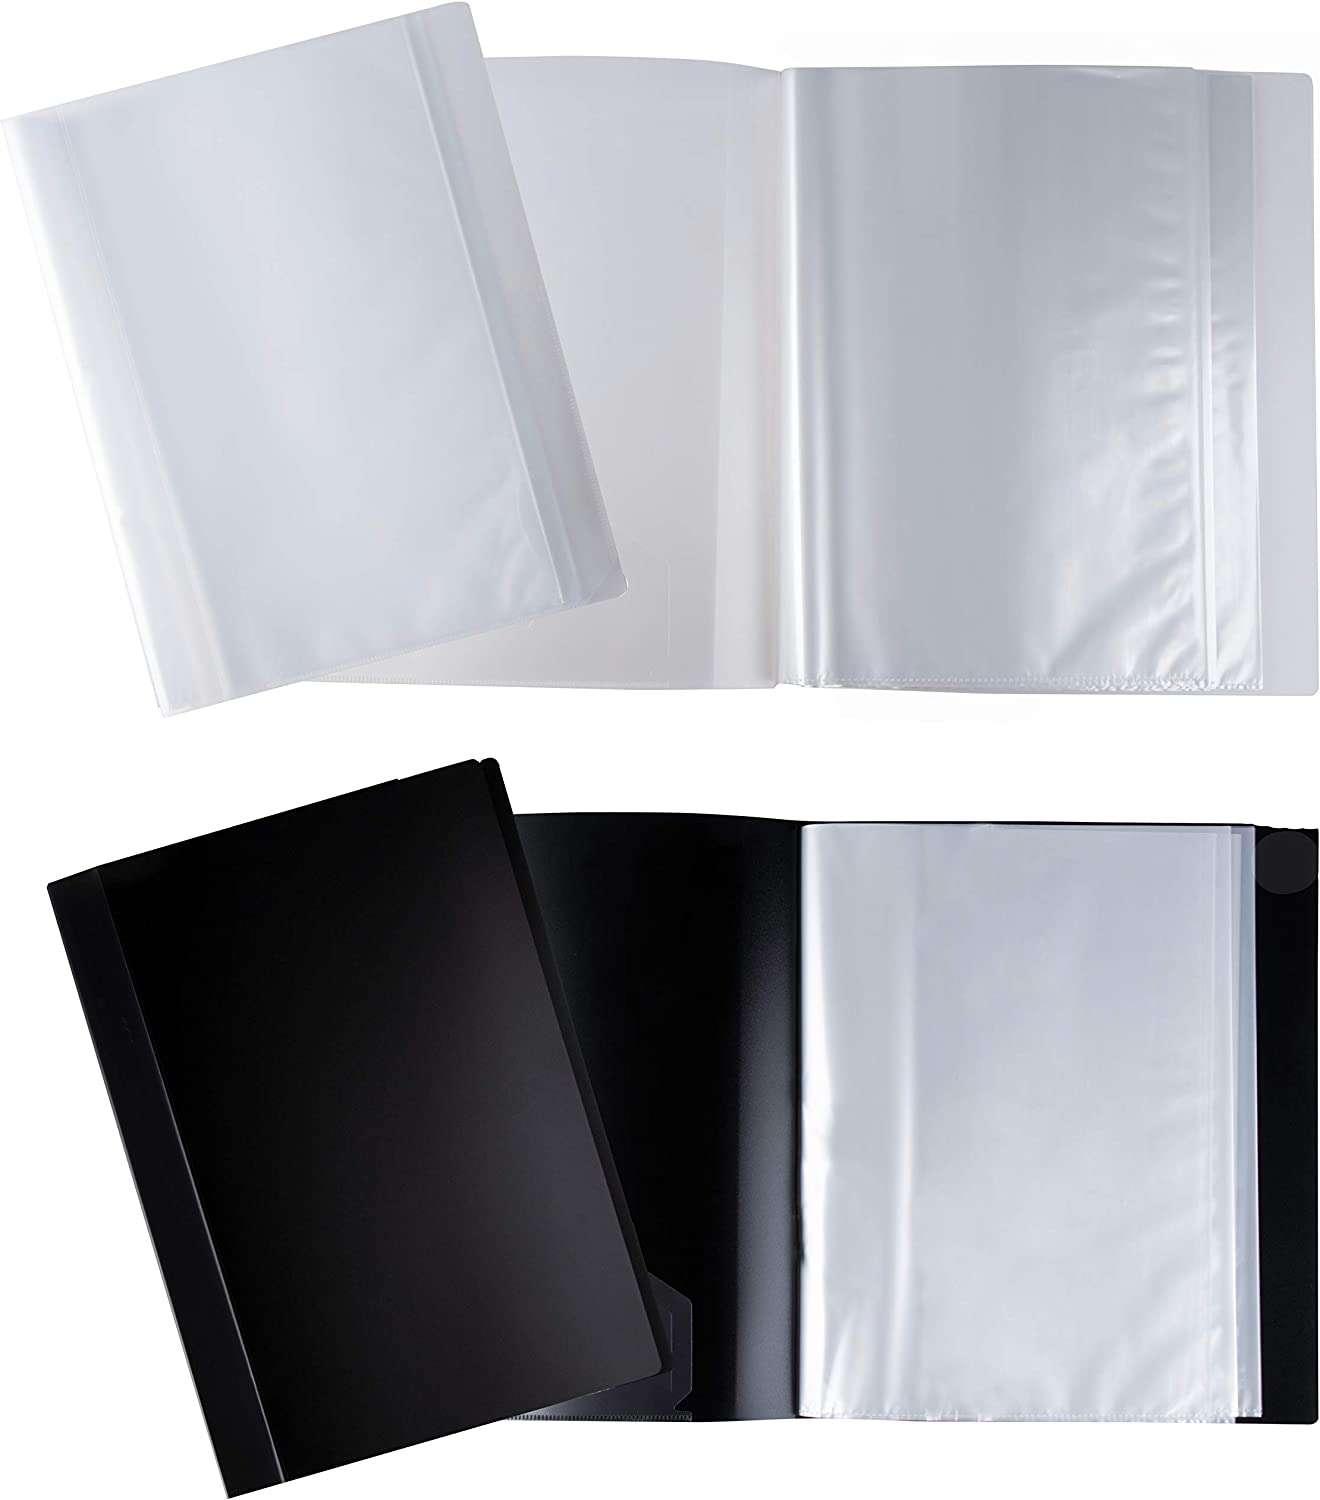 Presentation Book - 4-Pack Display Book with 40-Pocket Sheet Protector, Portfolio Folder for Document, Sheet Music, Art, for 8.5 x 11-Inch Inserts, 2 Clear and 2 Black Folders